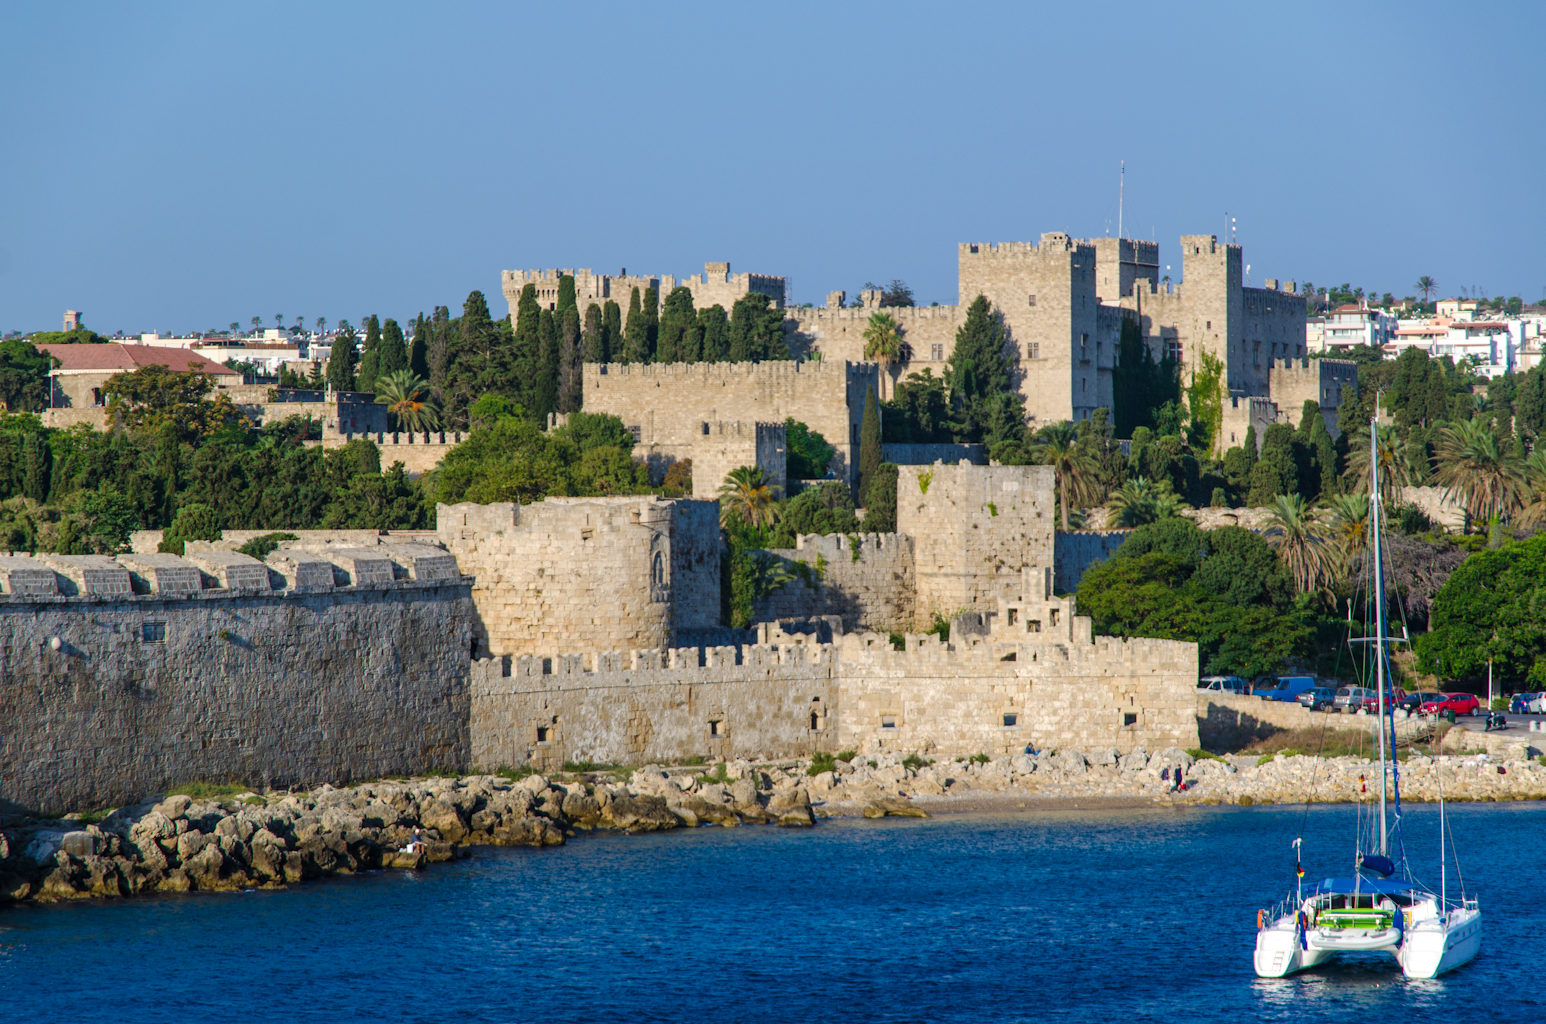 Rhodes - Palace of the Grand Master